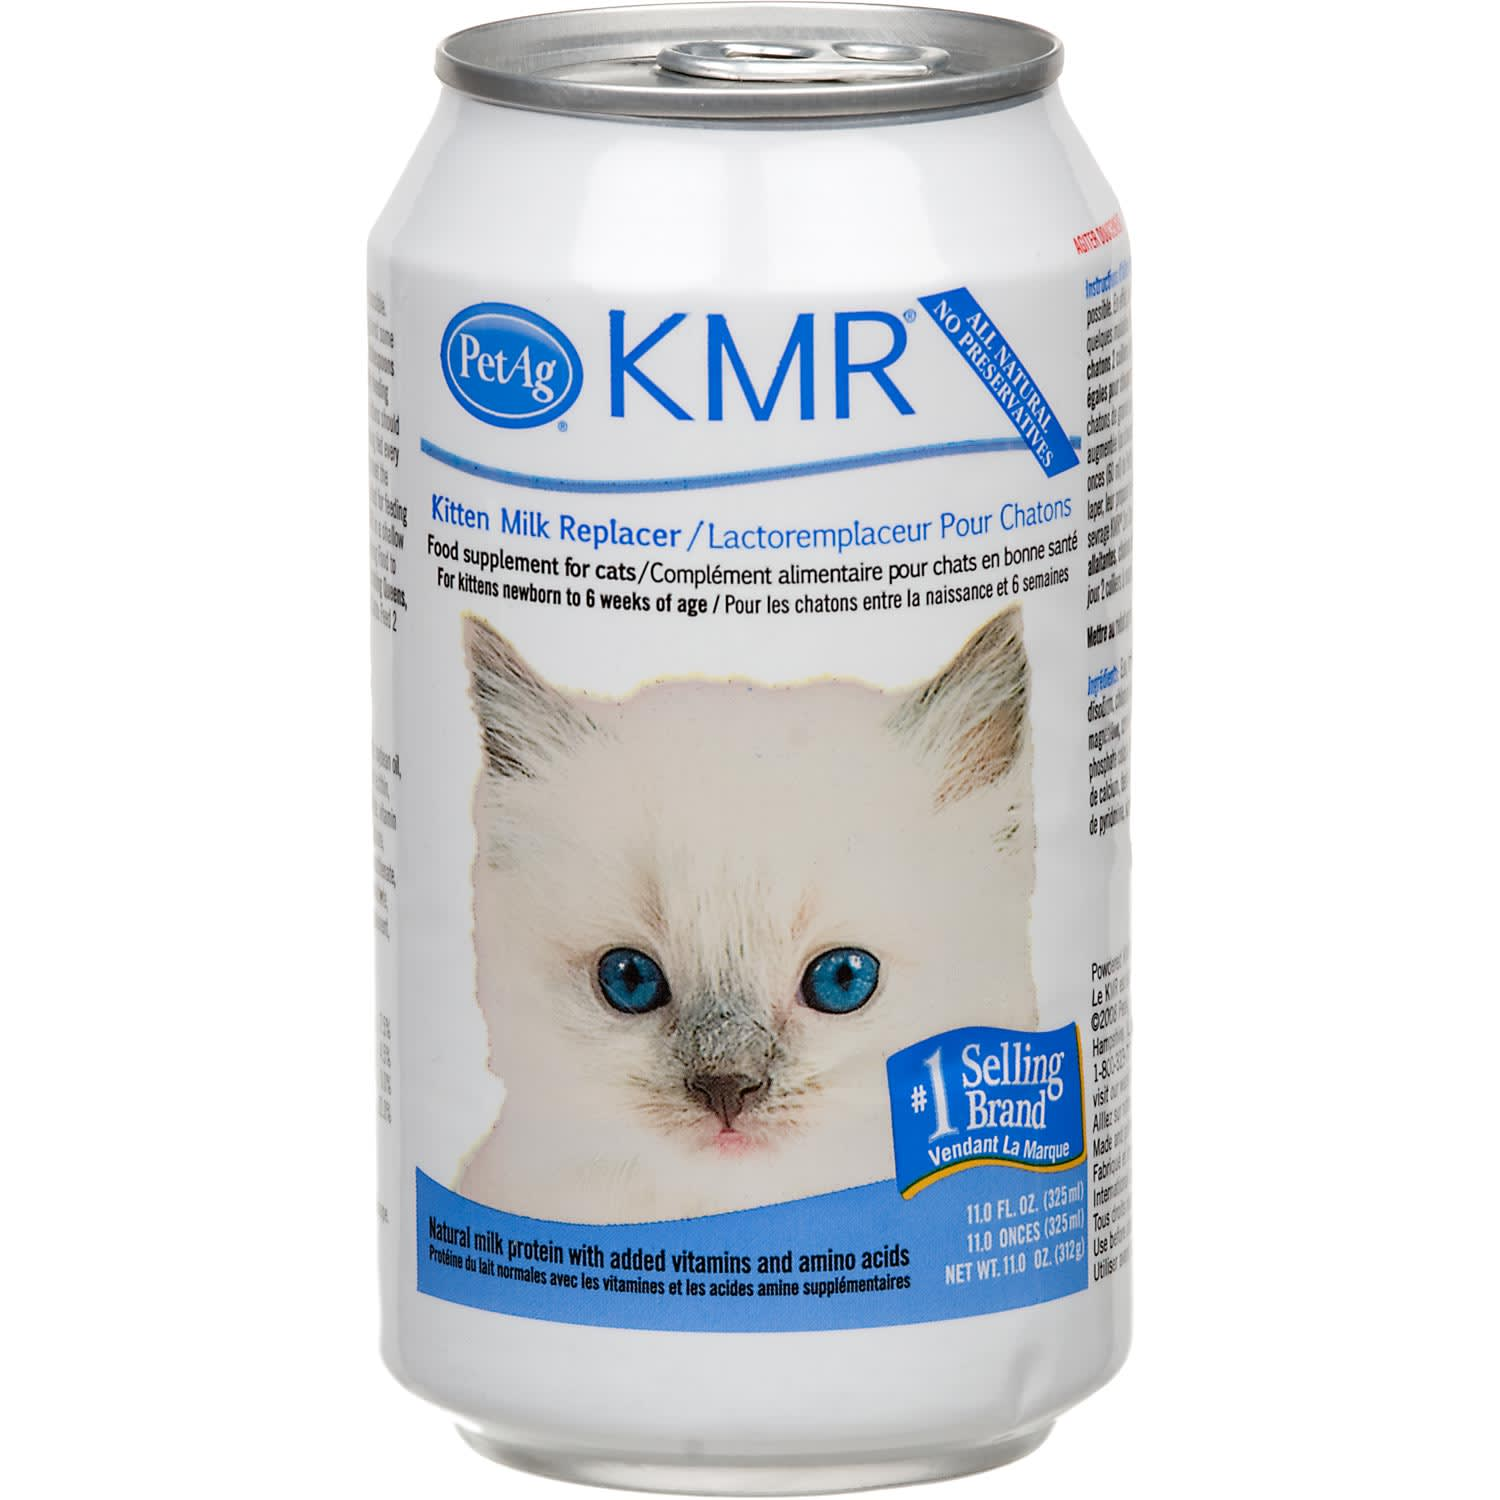 Petag Kmr Kitten Milk Replacer Liquid 11 Oz Petco